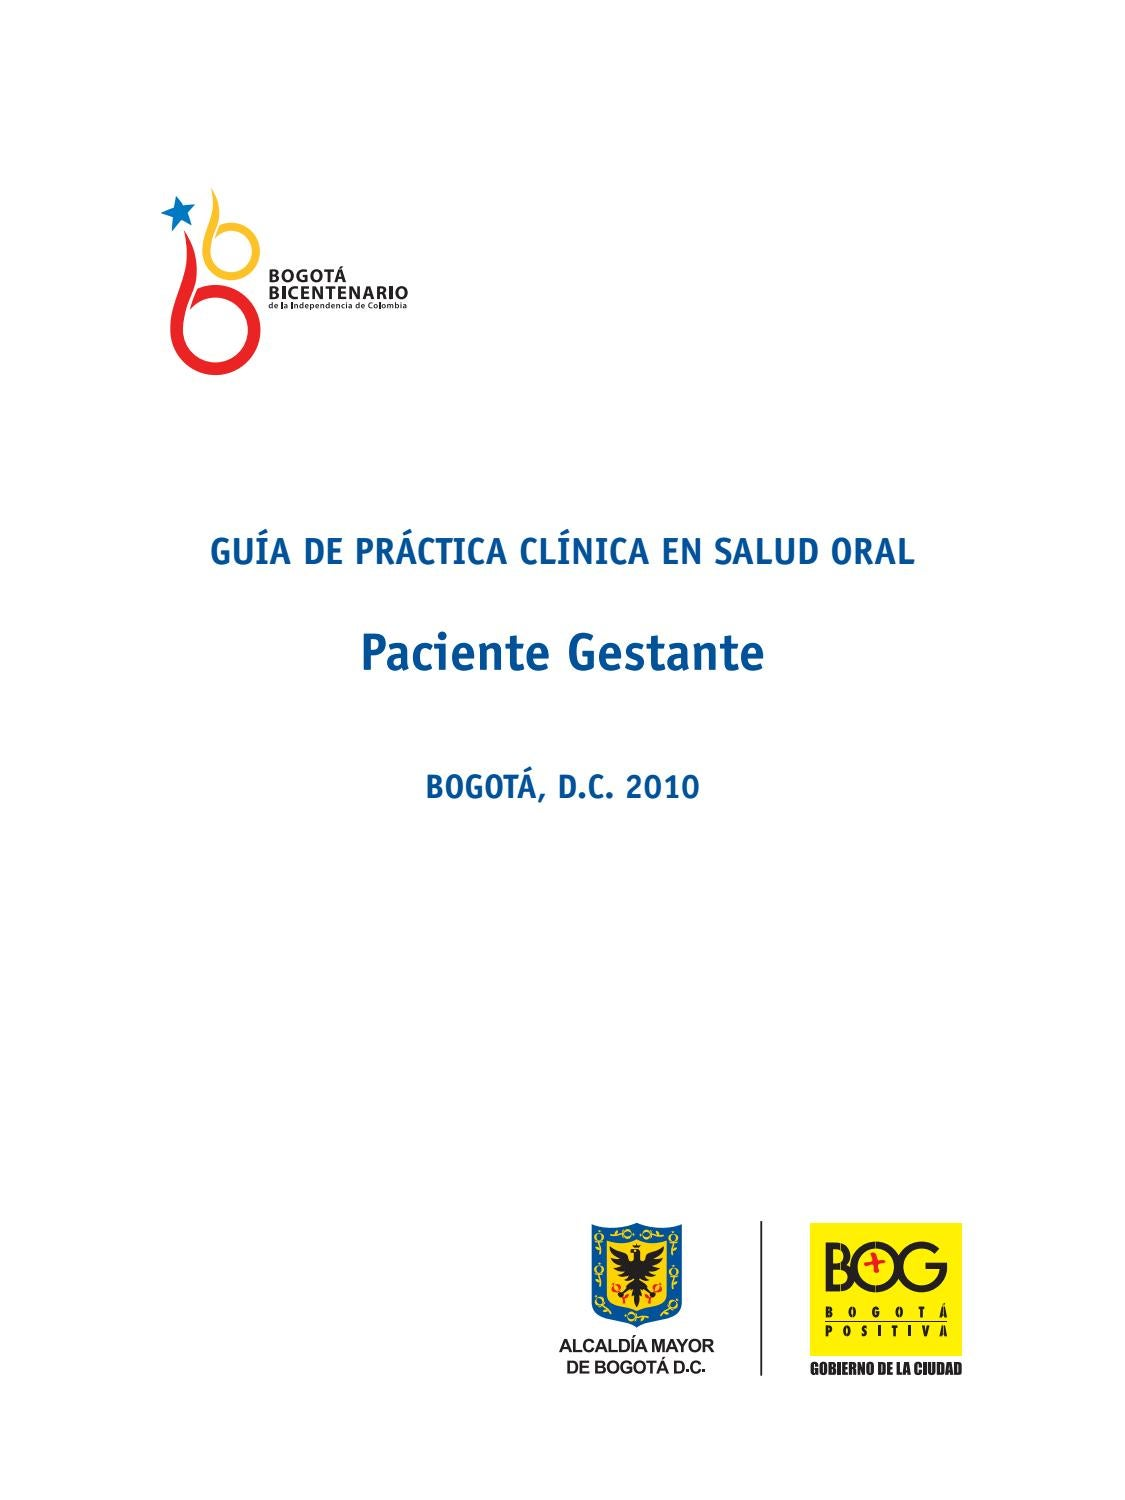 guiasalud guias de practica clinica diabetes